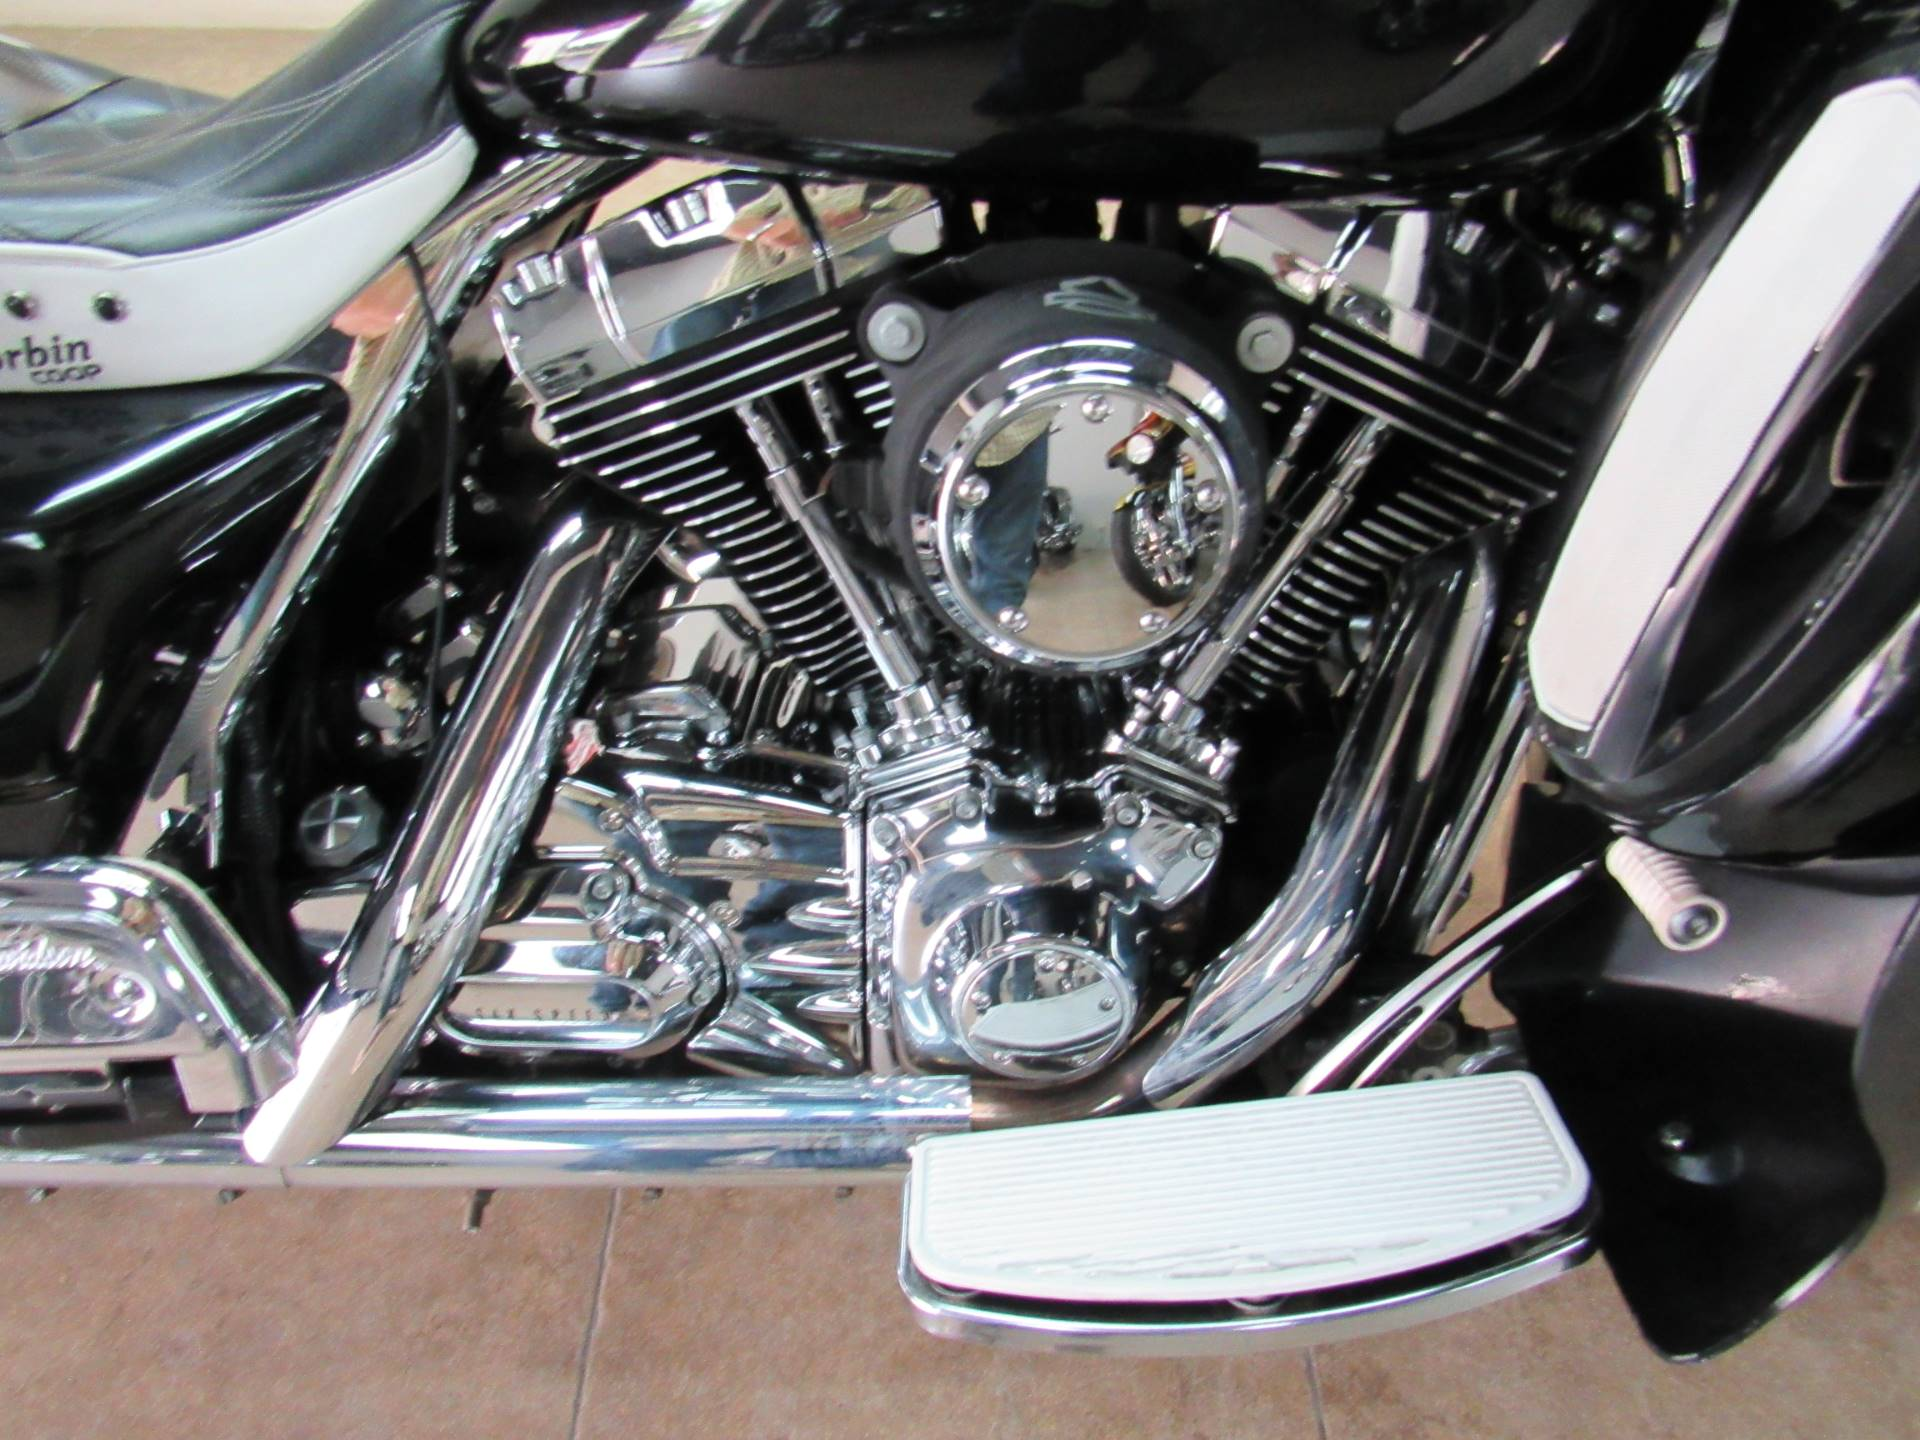 2008 Harley-Davidson Road King® in Temecula, California - Photo 11